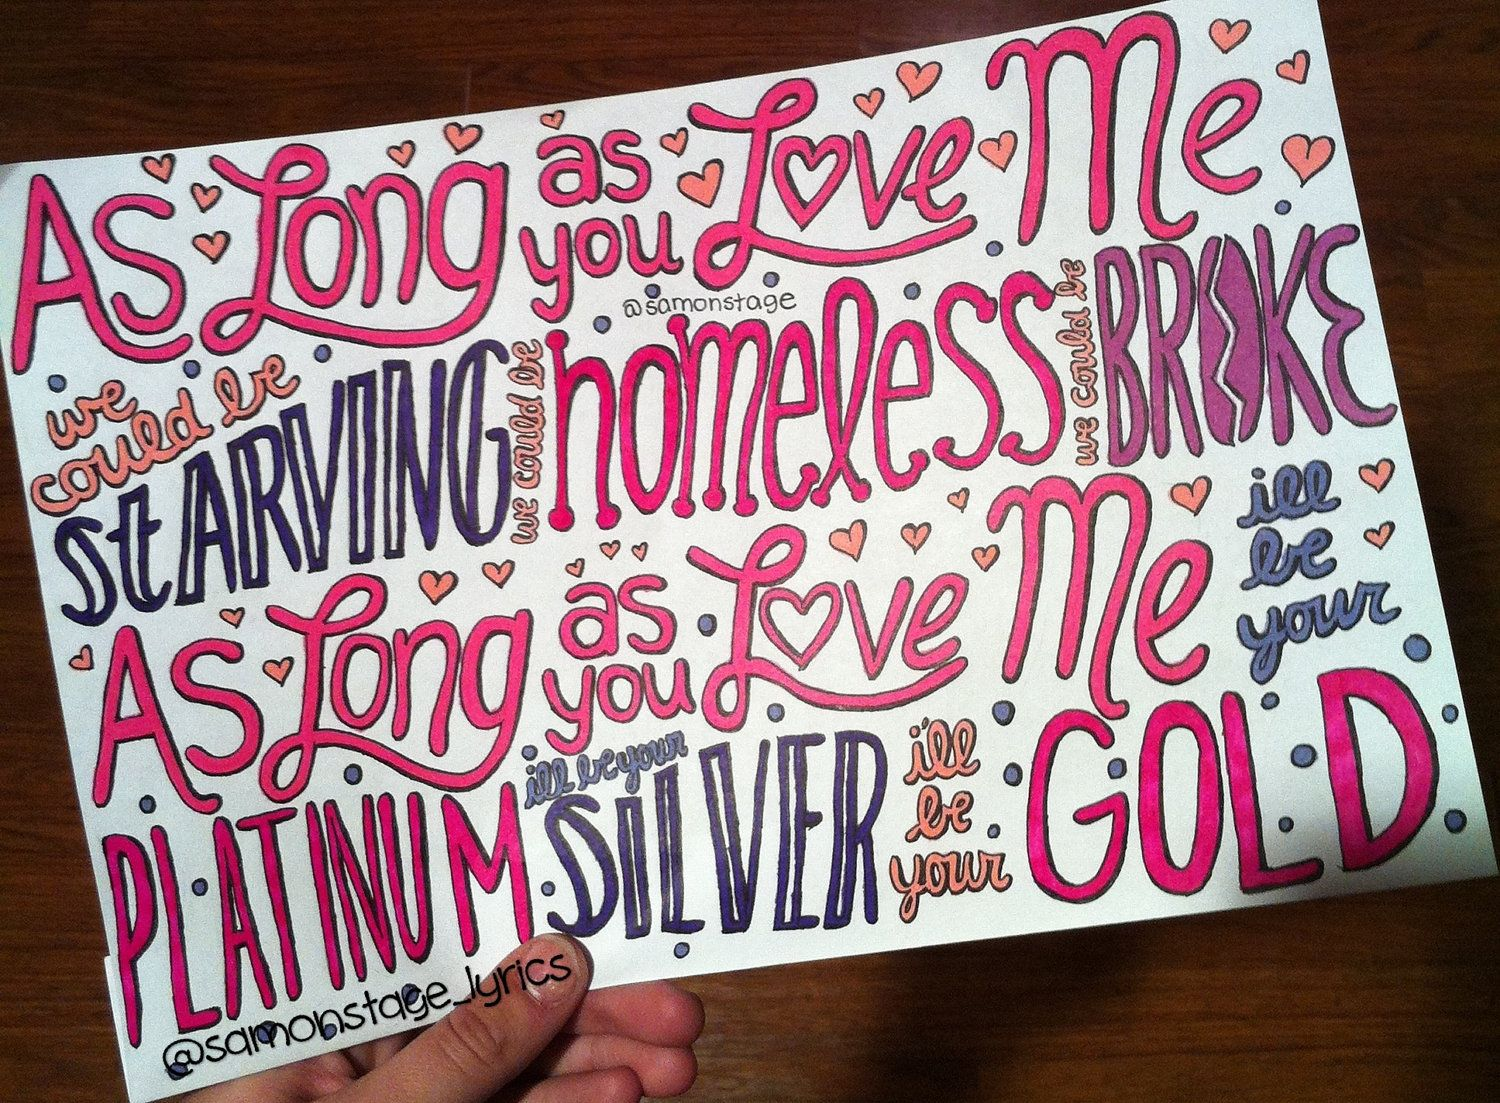 Justin bieber tumblr lyrics live quotes - As Long As You Love Me Lyric Drawing I M Sorry But I Love Justin Bieber And I M Not Afraid To Admit That